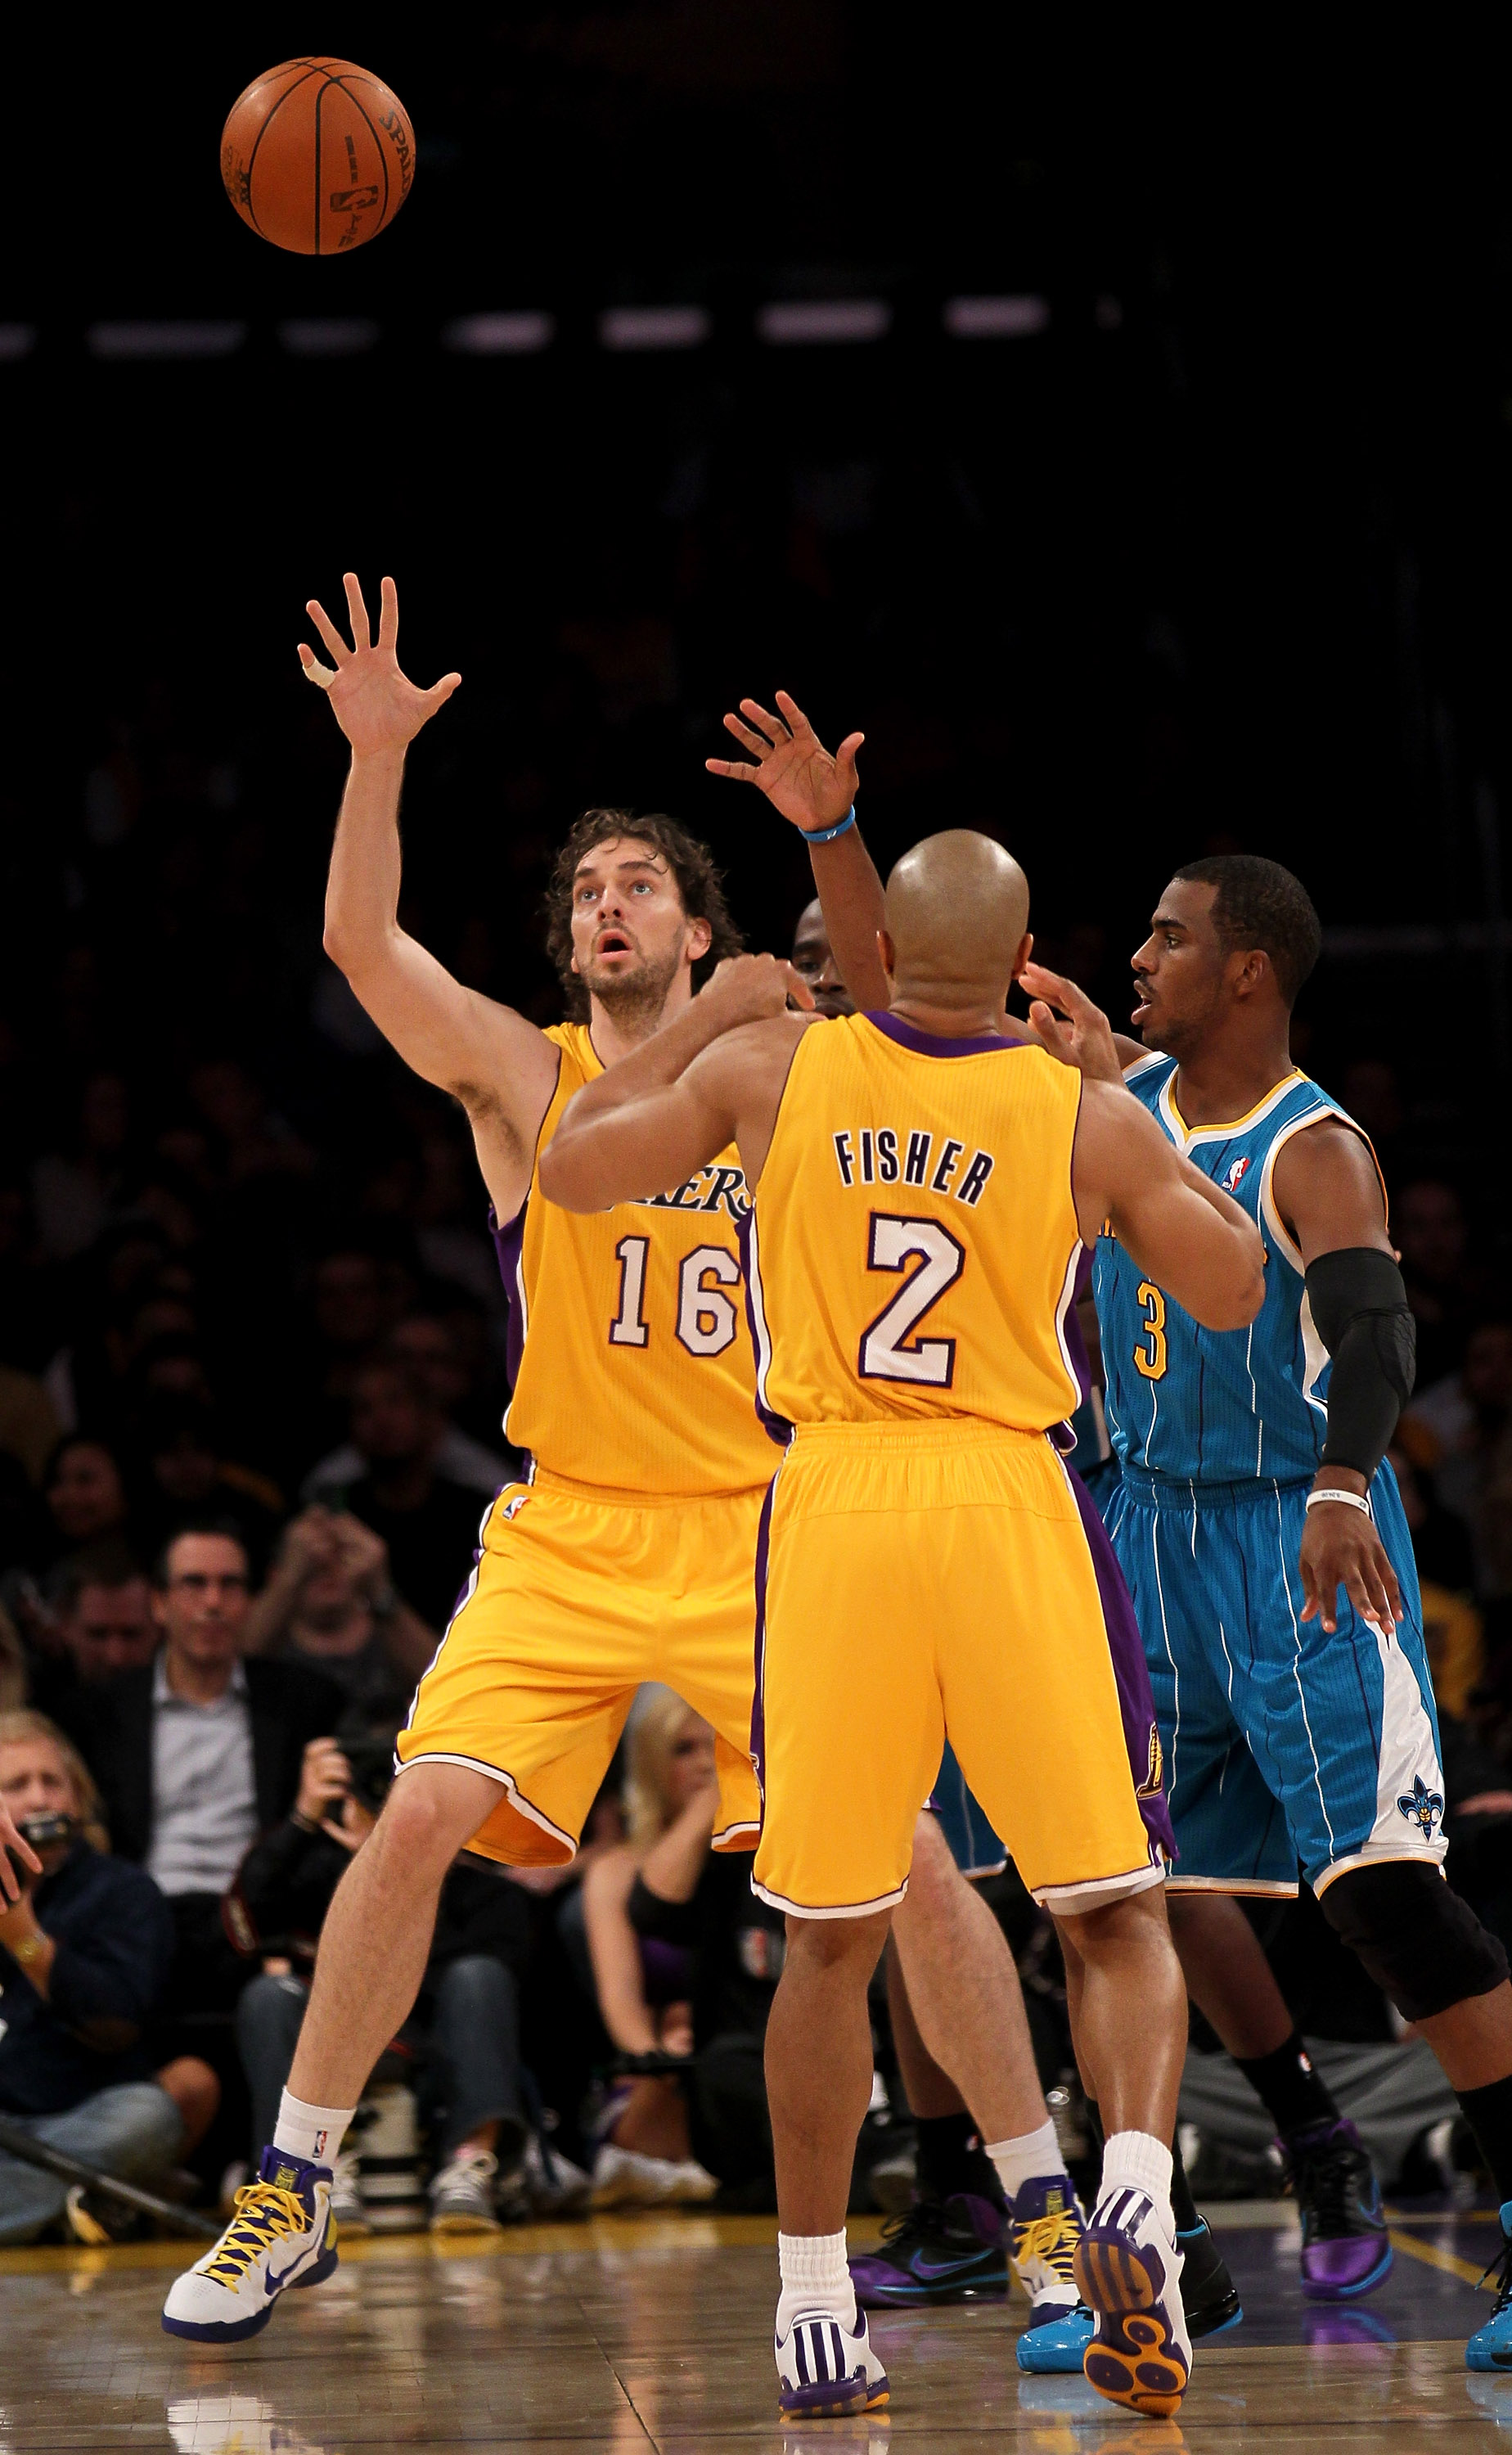 LOS ANGELES, CA - JANUARY 07:  Pau Gasol #16 of the Los Angeles Lakers reaches for a pass from Derek Fisher #16 as Chris Paul #3 of the New Orleans Hornets defends at Staples Center on January 7, 2011 in Los Angeles, California.  The Lakers won 101-97.  N